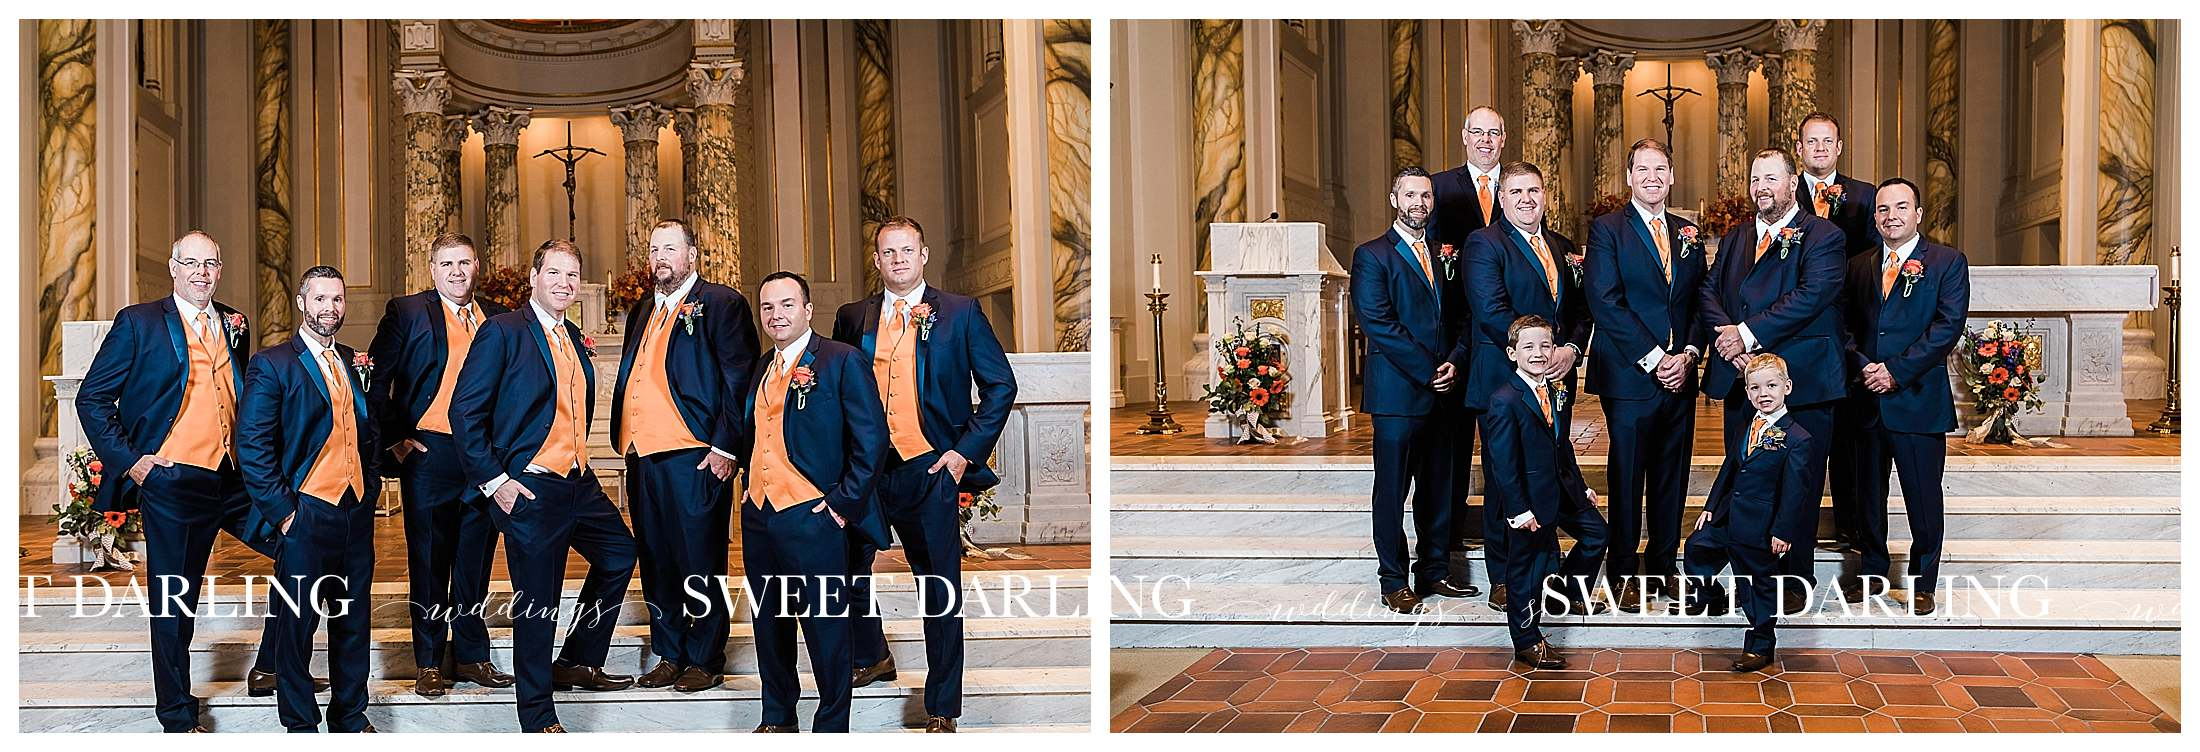 champaign-illinois-wedding-photographer-university-ffa-sweet-darling_1861.jpg